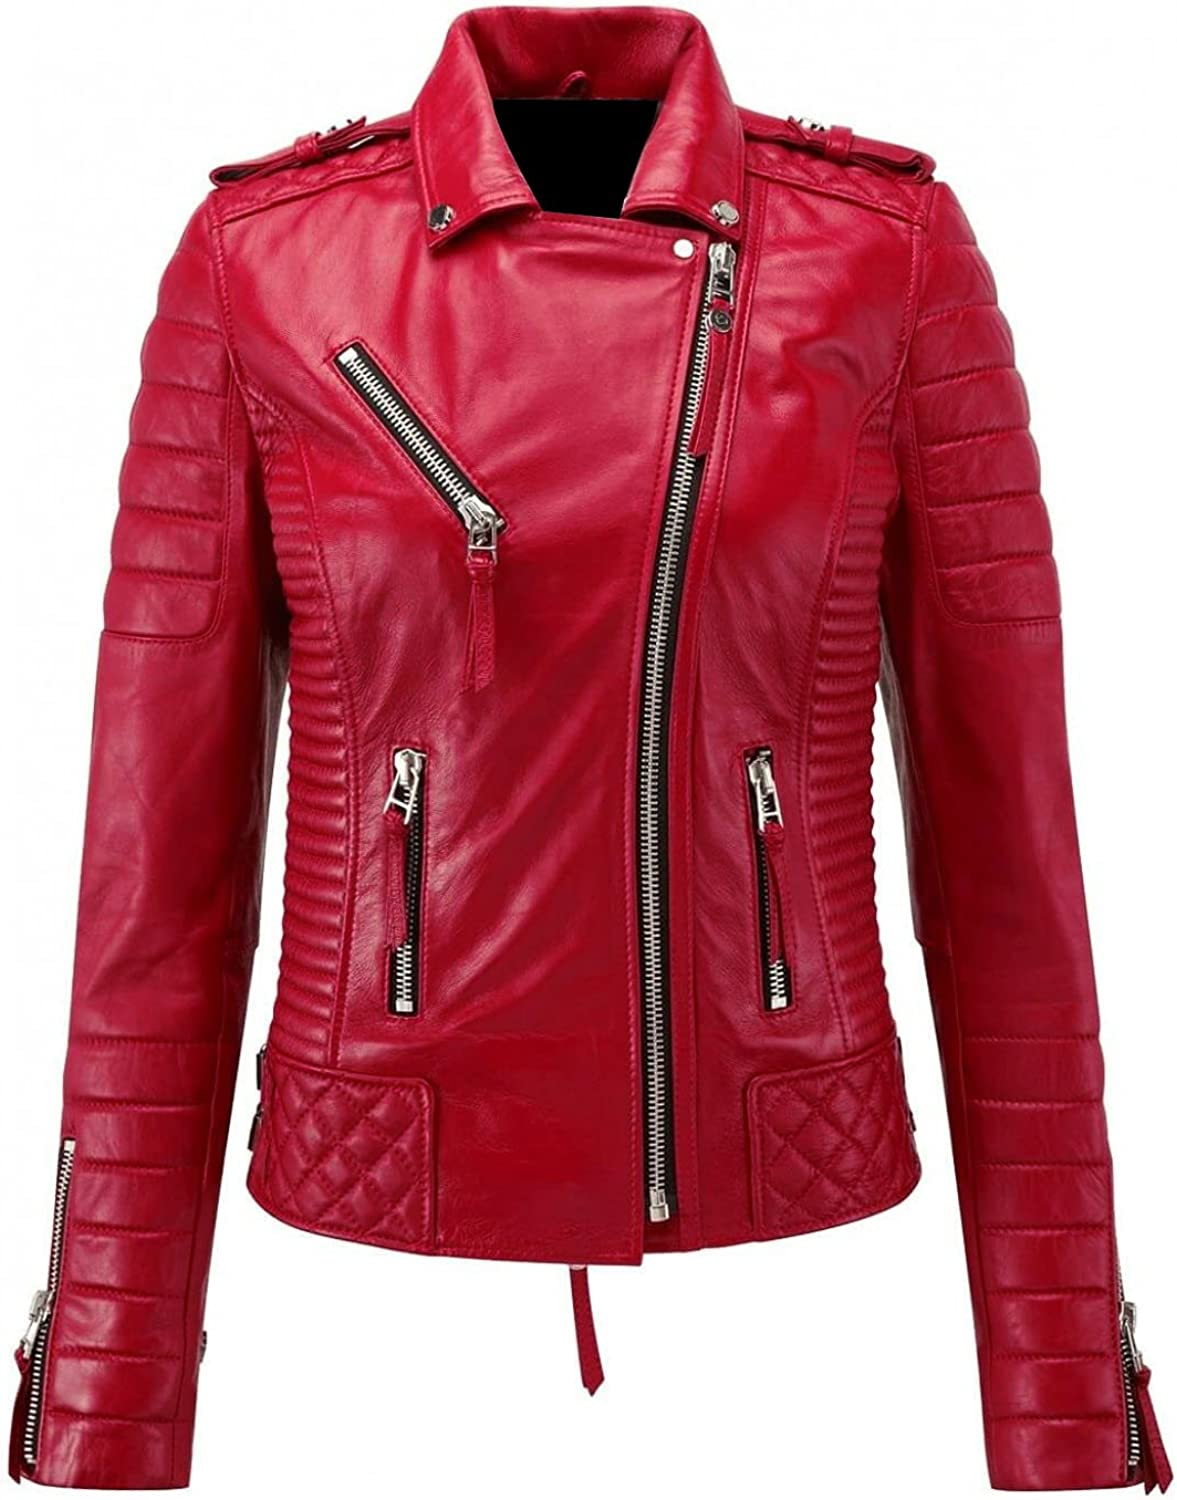 Finest Collections Women Red Diamond Quilted Faux Leather Jacket